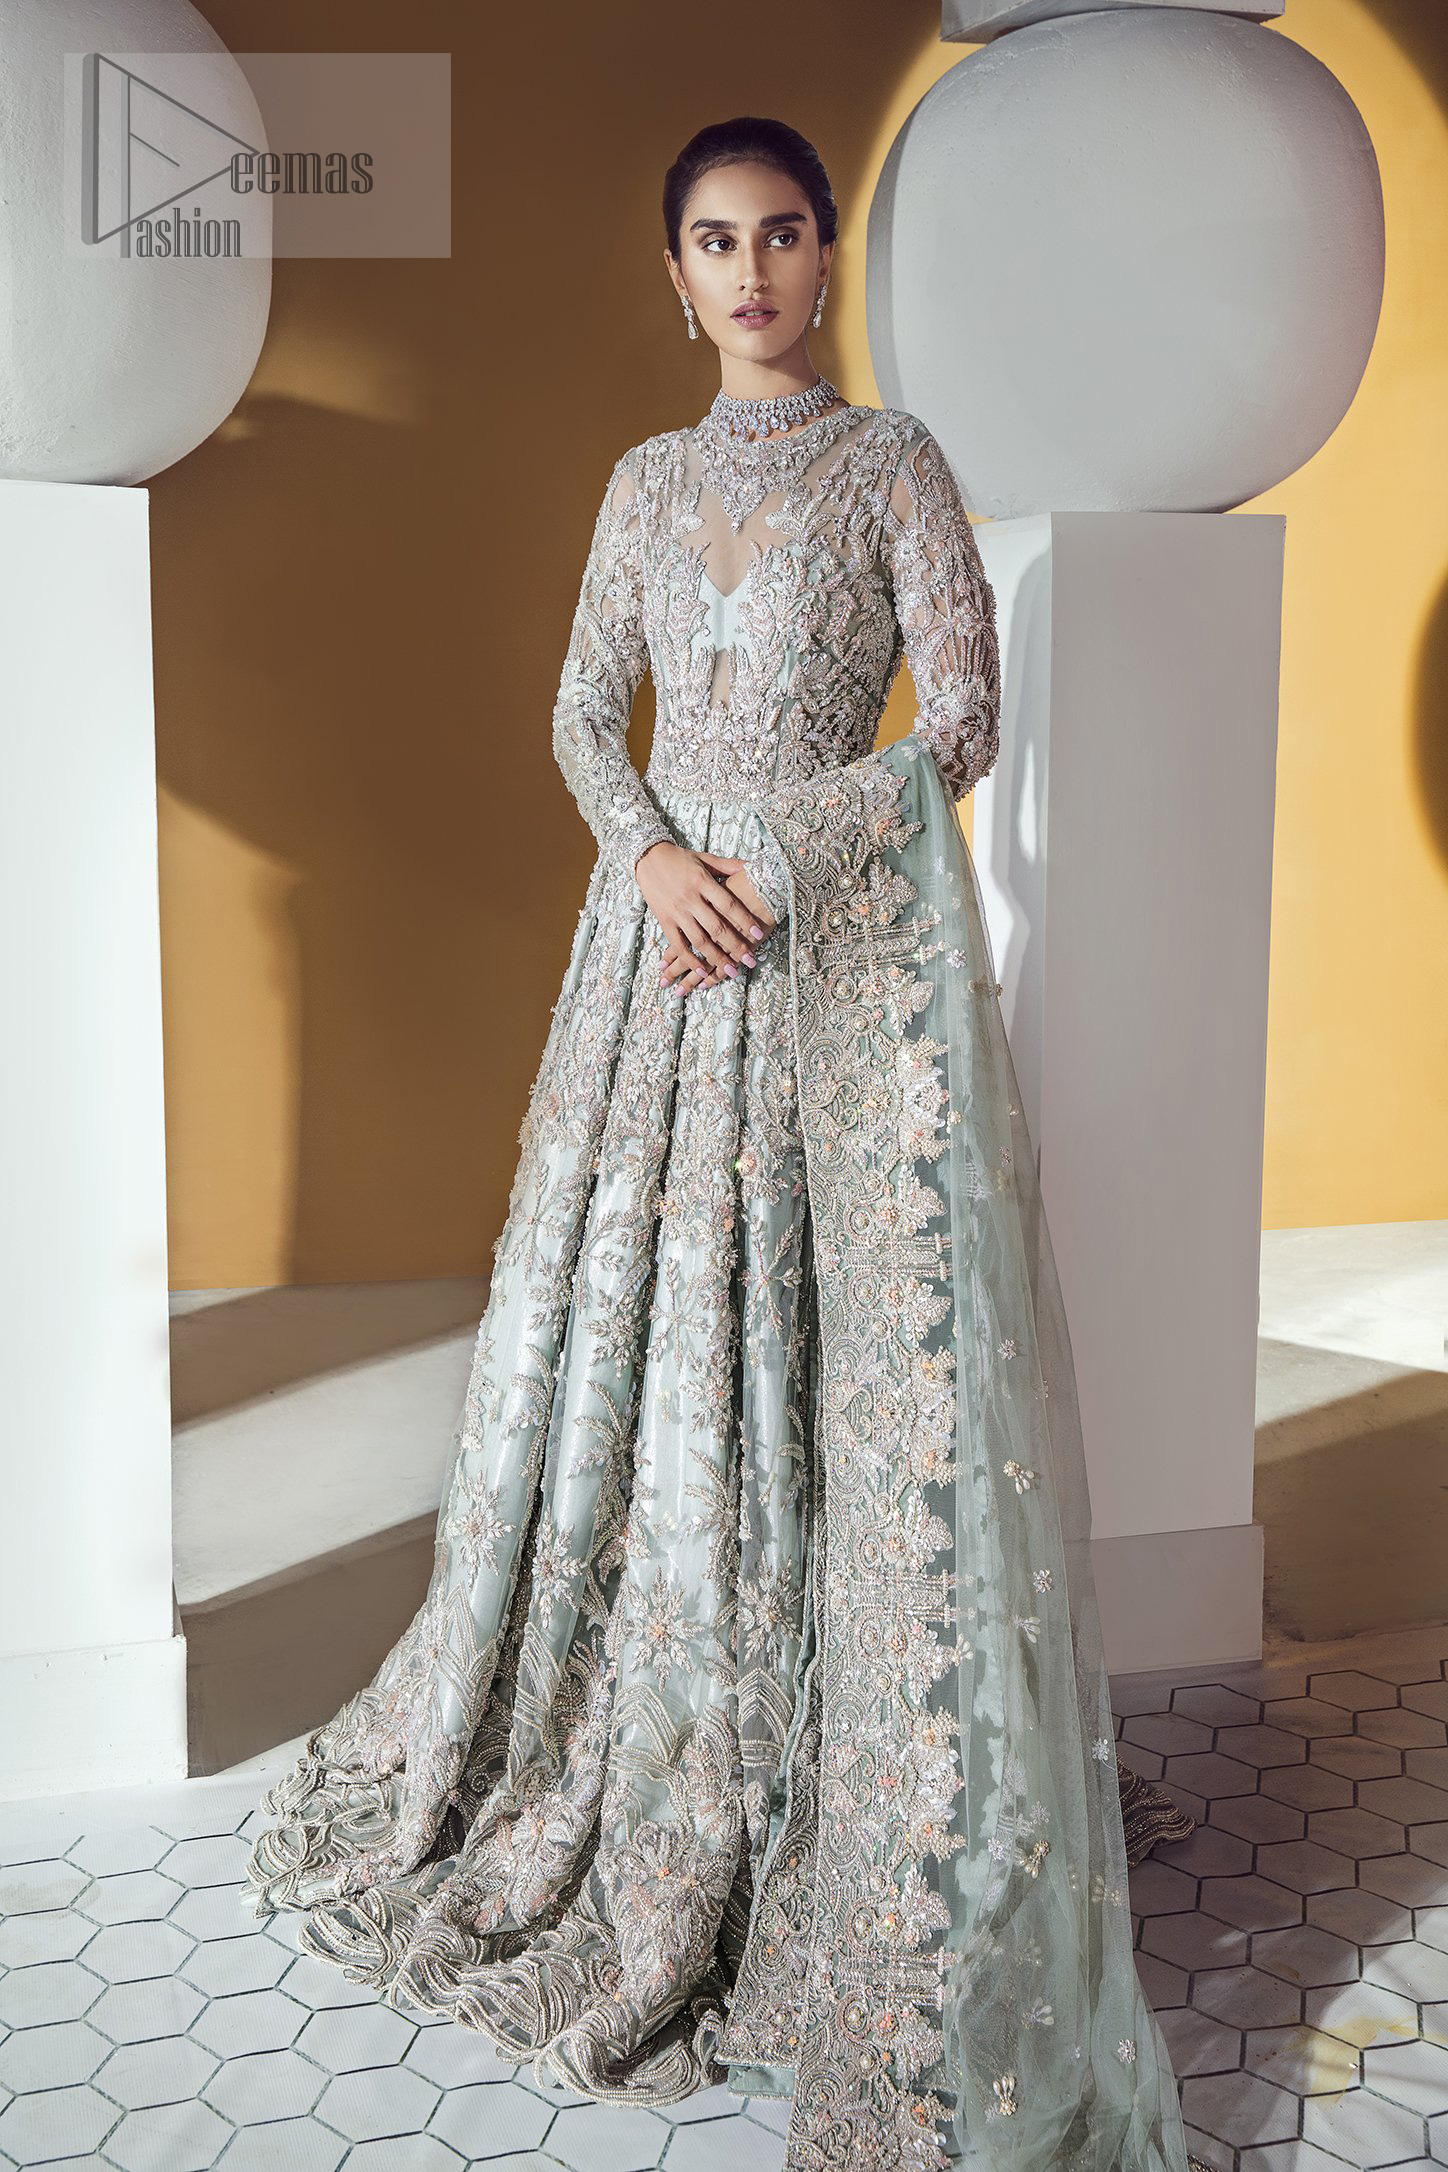 Furthermore this shirt is made of rich floral embroidery which is enhanced with zardoze work. It is highlighted with kora, dabka, tilla, sequins and pearls. It comes with brocade churidar pajama. It is coordinated with tissue dupatta which is sprinkled with sequins all over it.